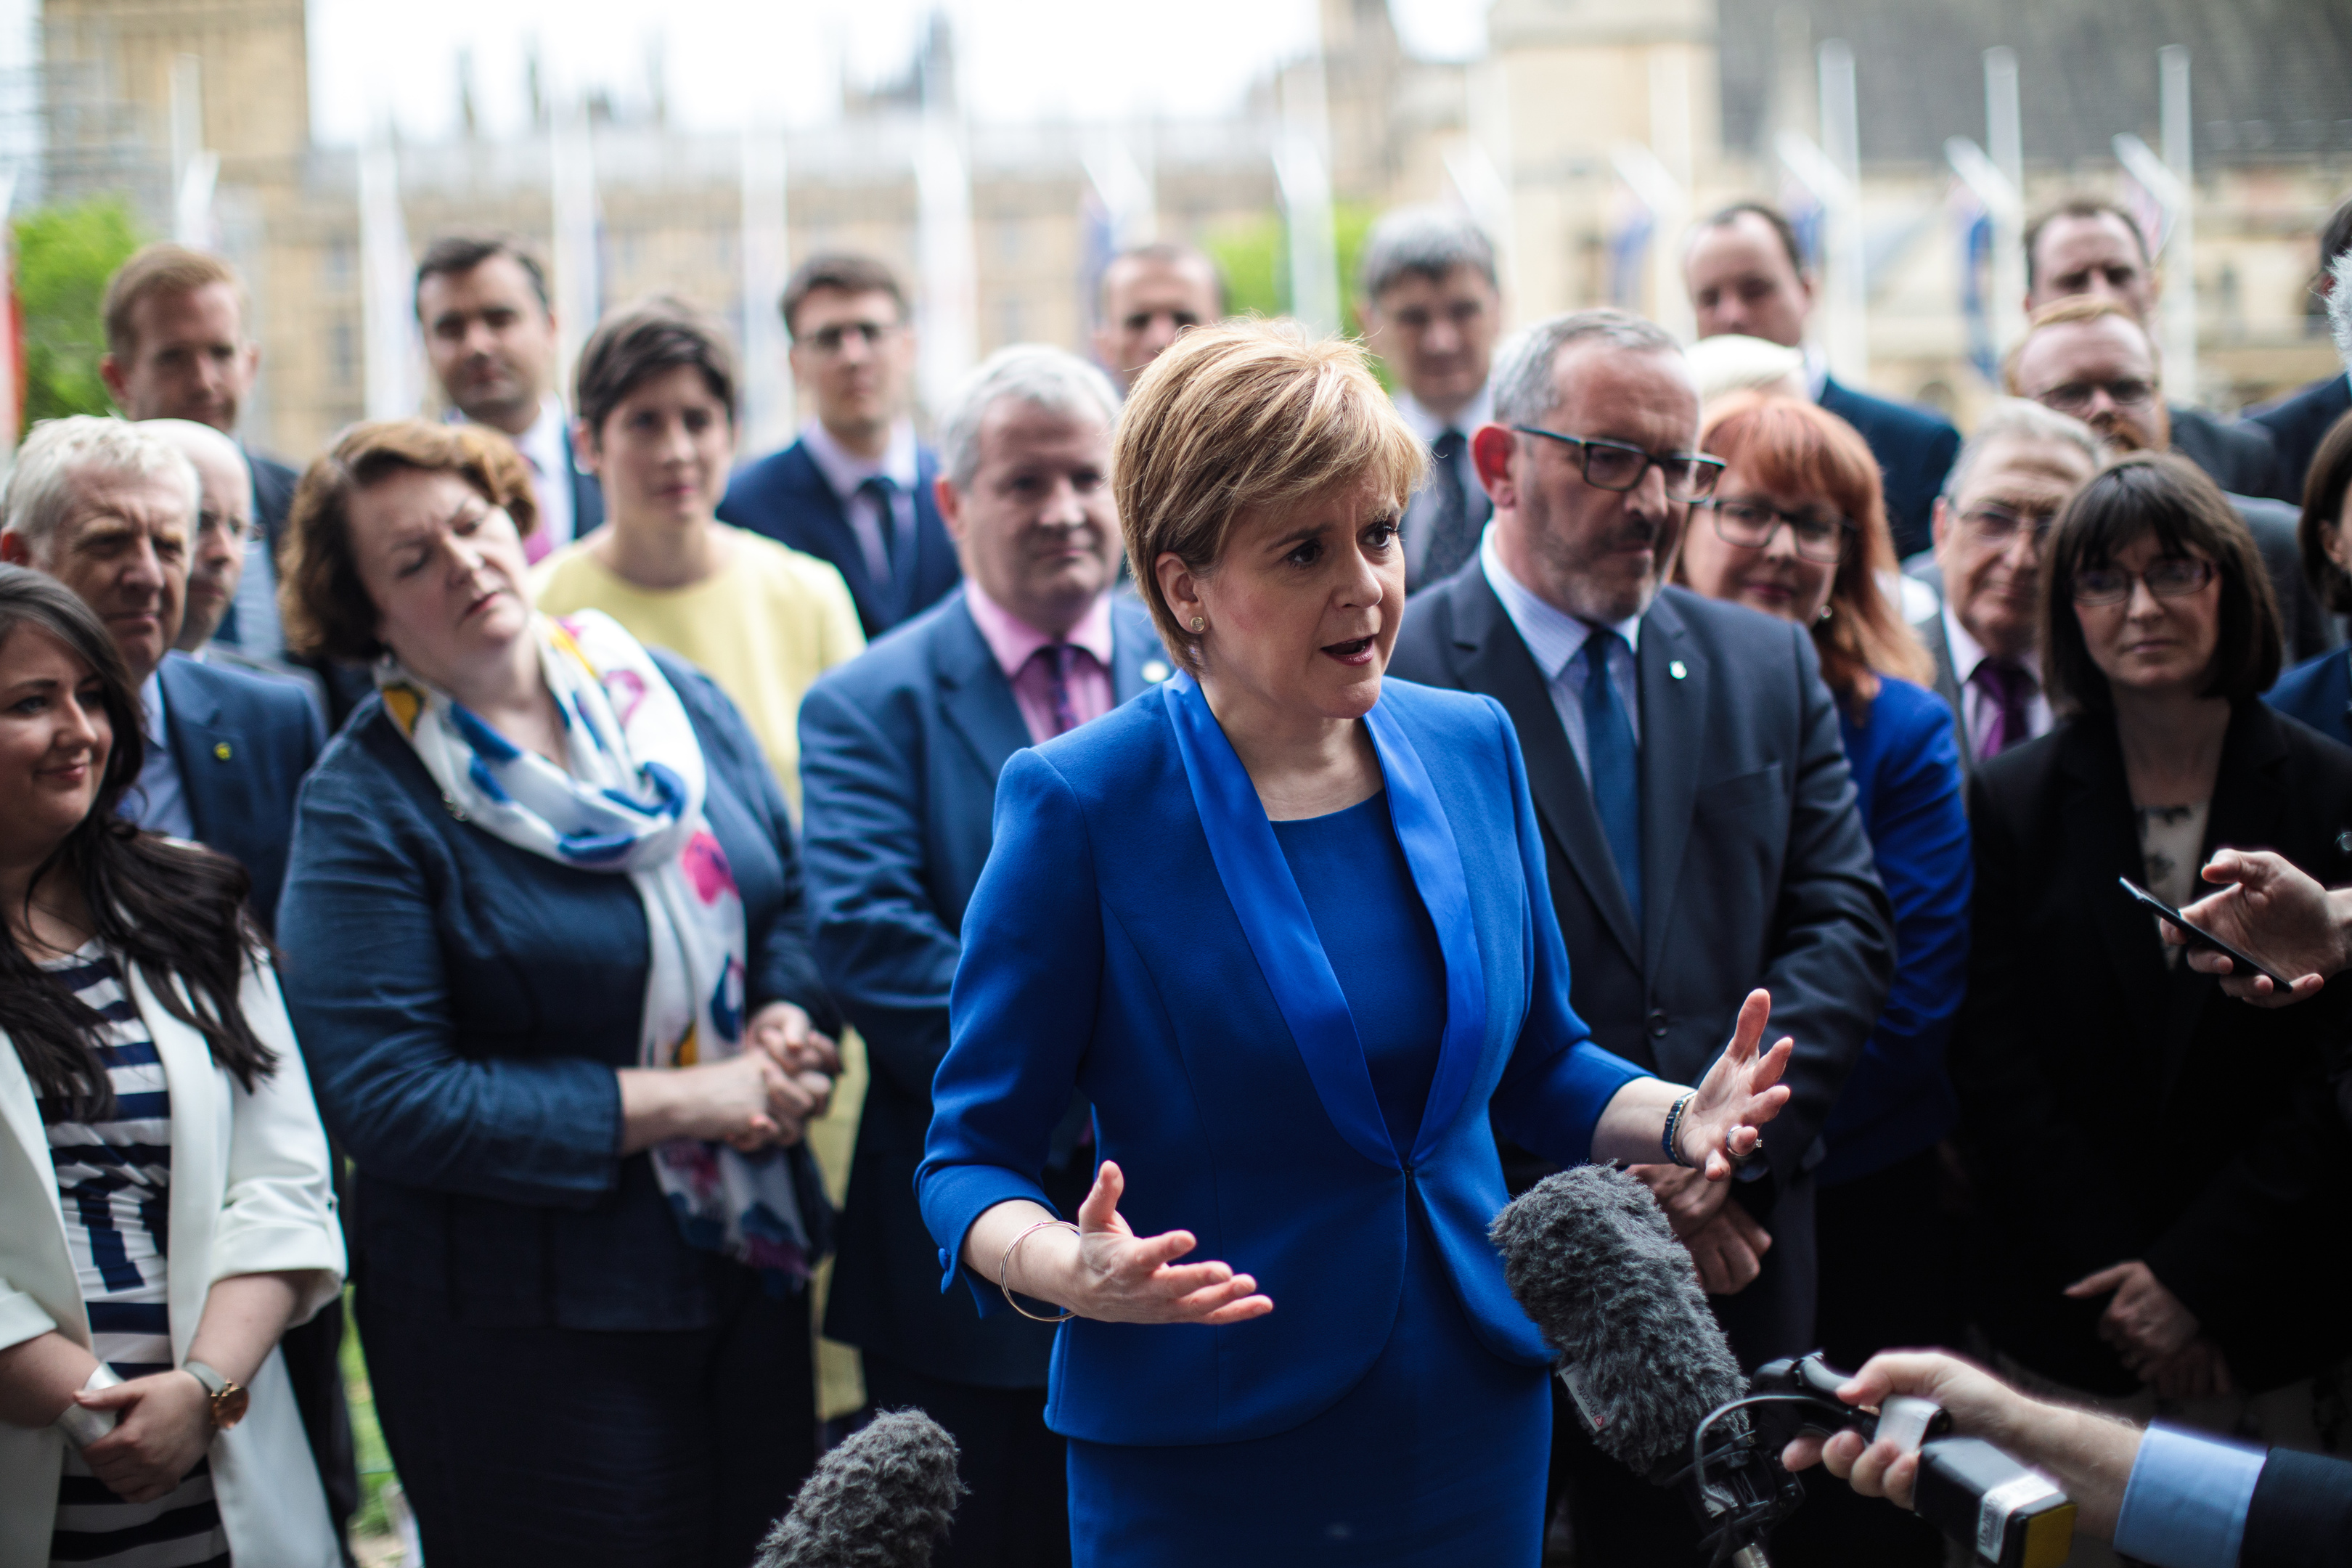 SNP leader Nicola Sturgeon speaks to the media as she stands in front of SNP MPs elected in the general election during a photocall in Parliament Square.